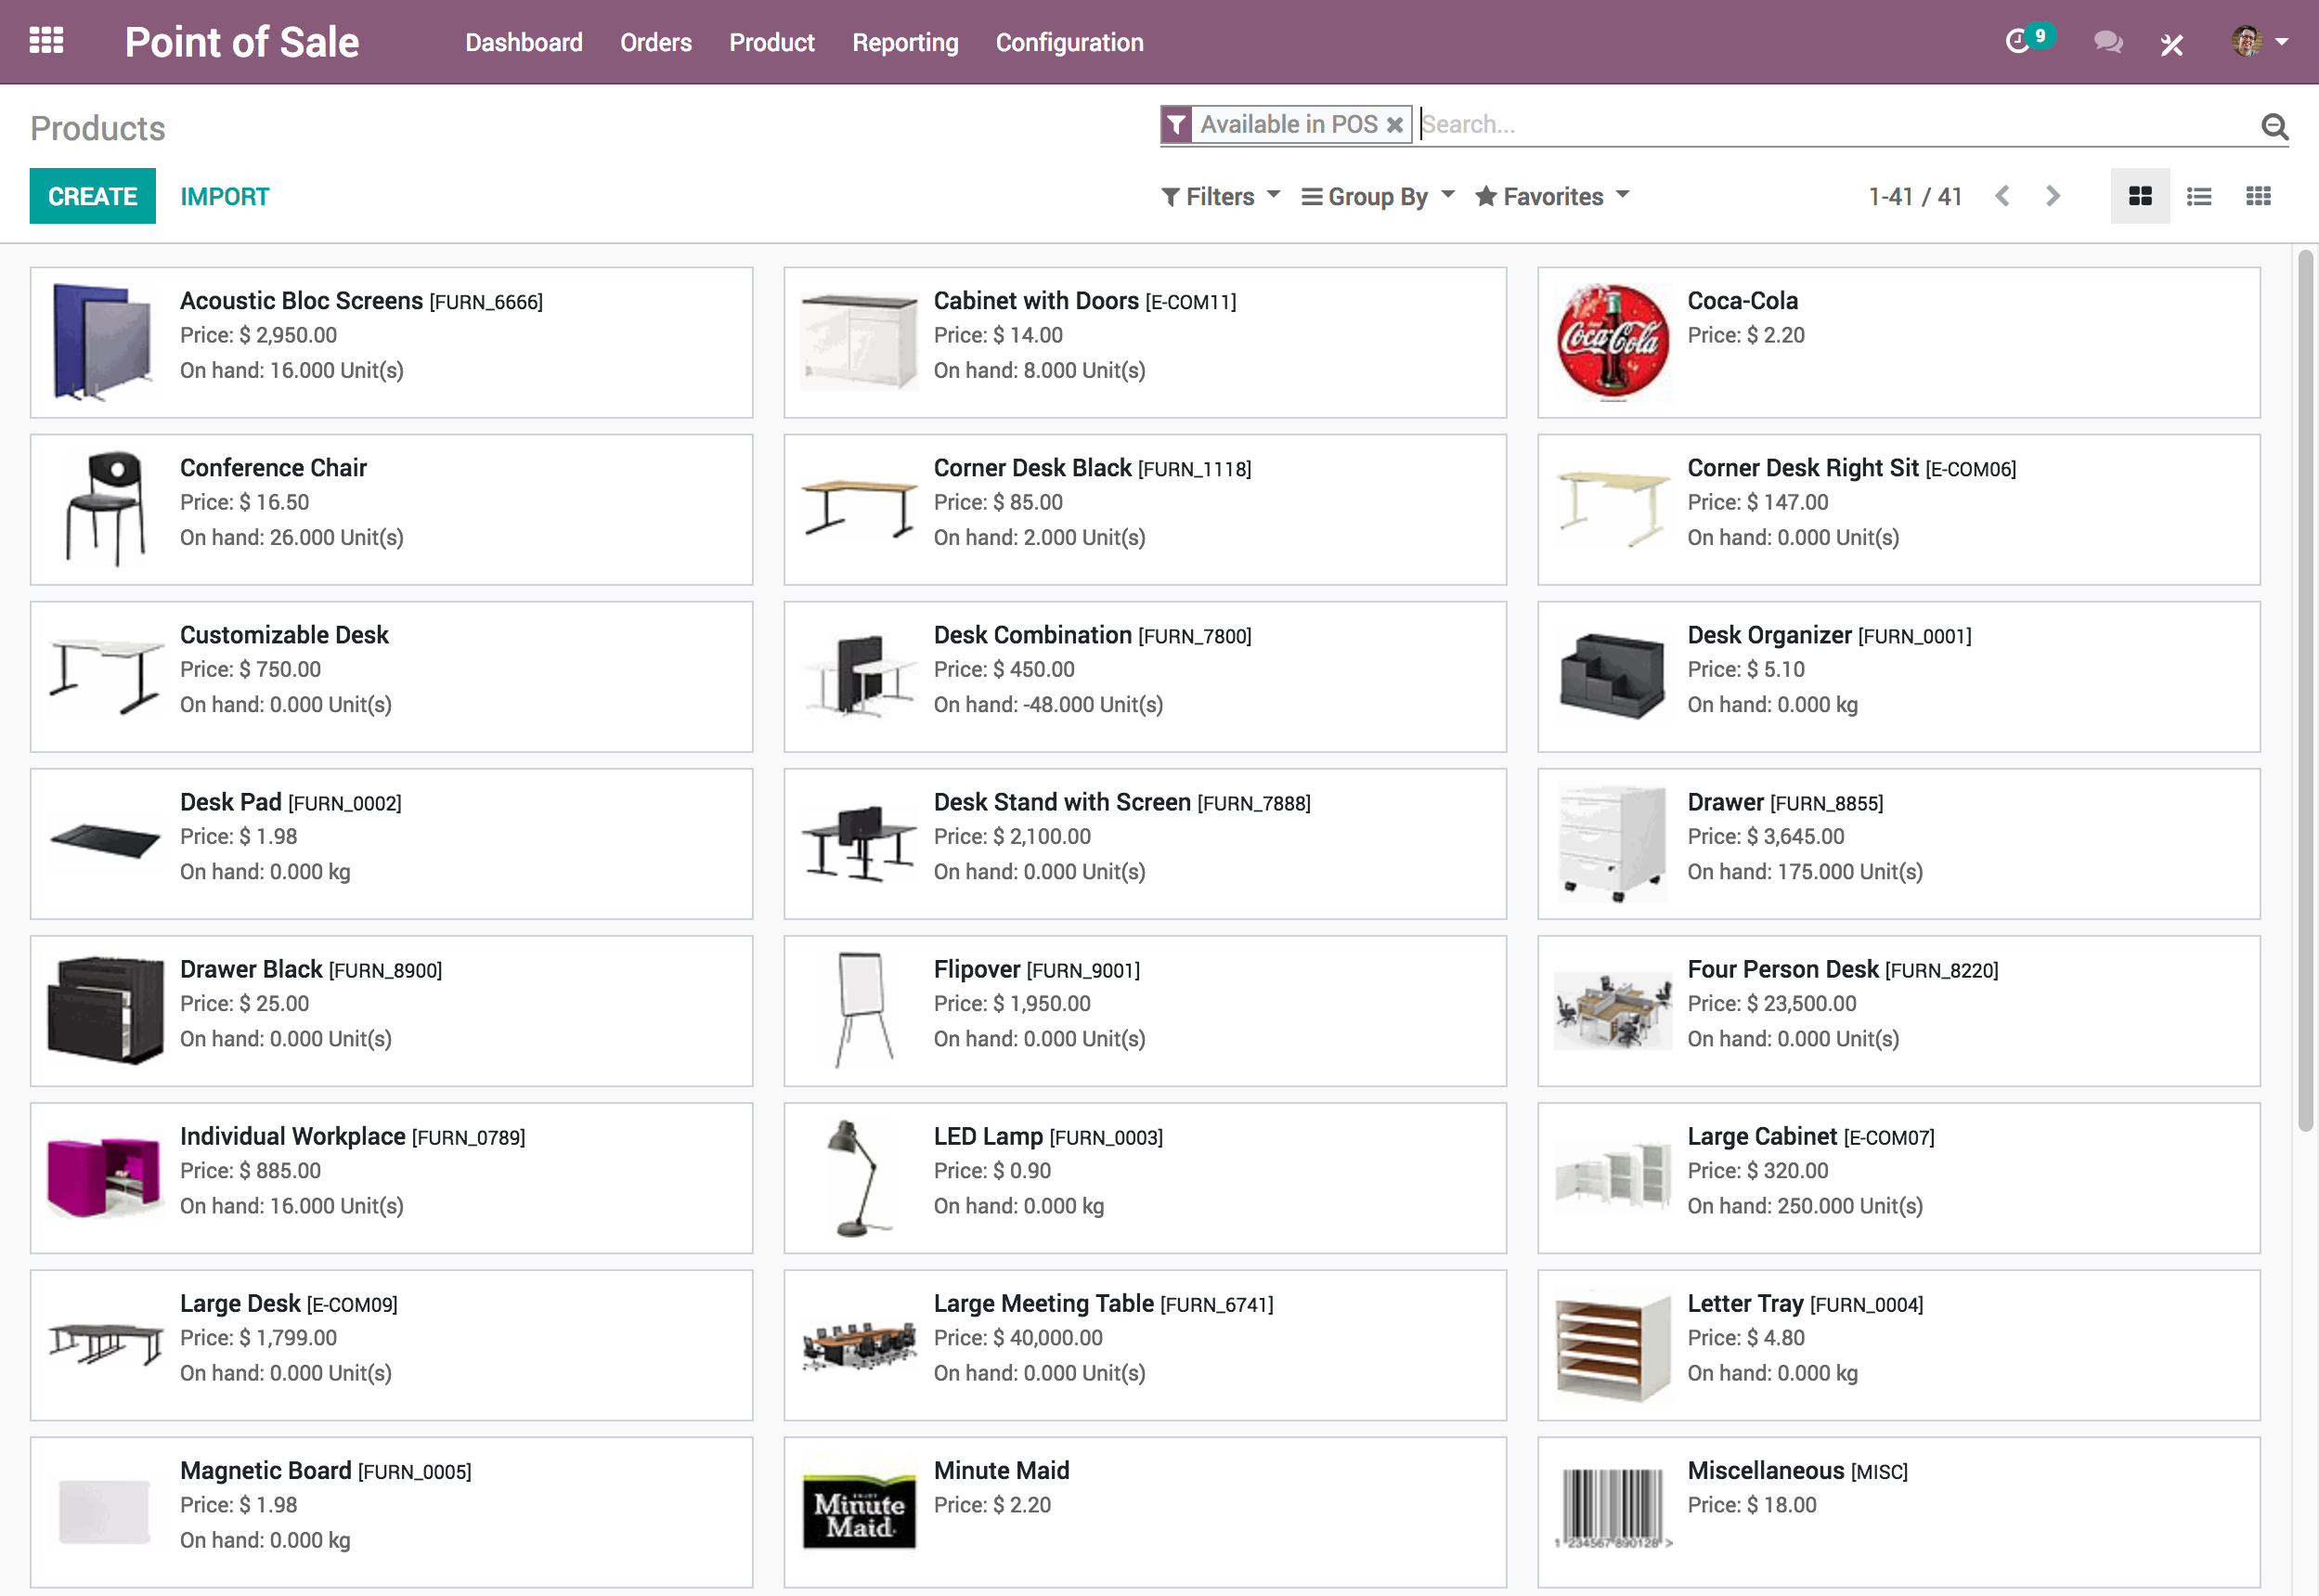 Odoo Point of Sale (POS) products screenshot